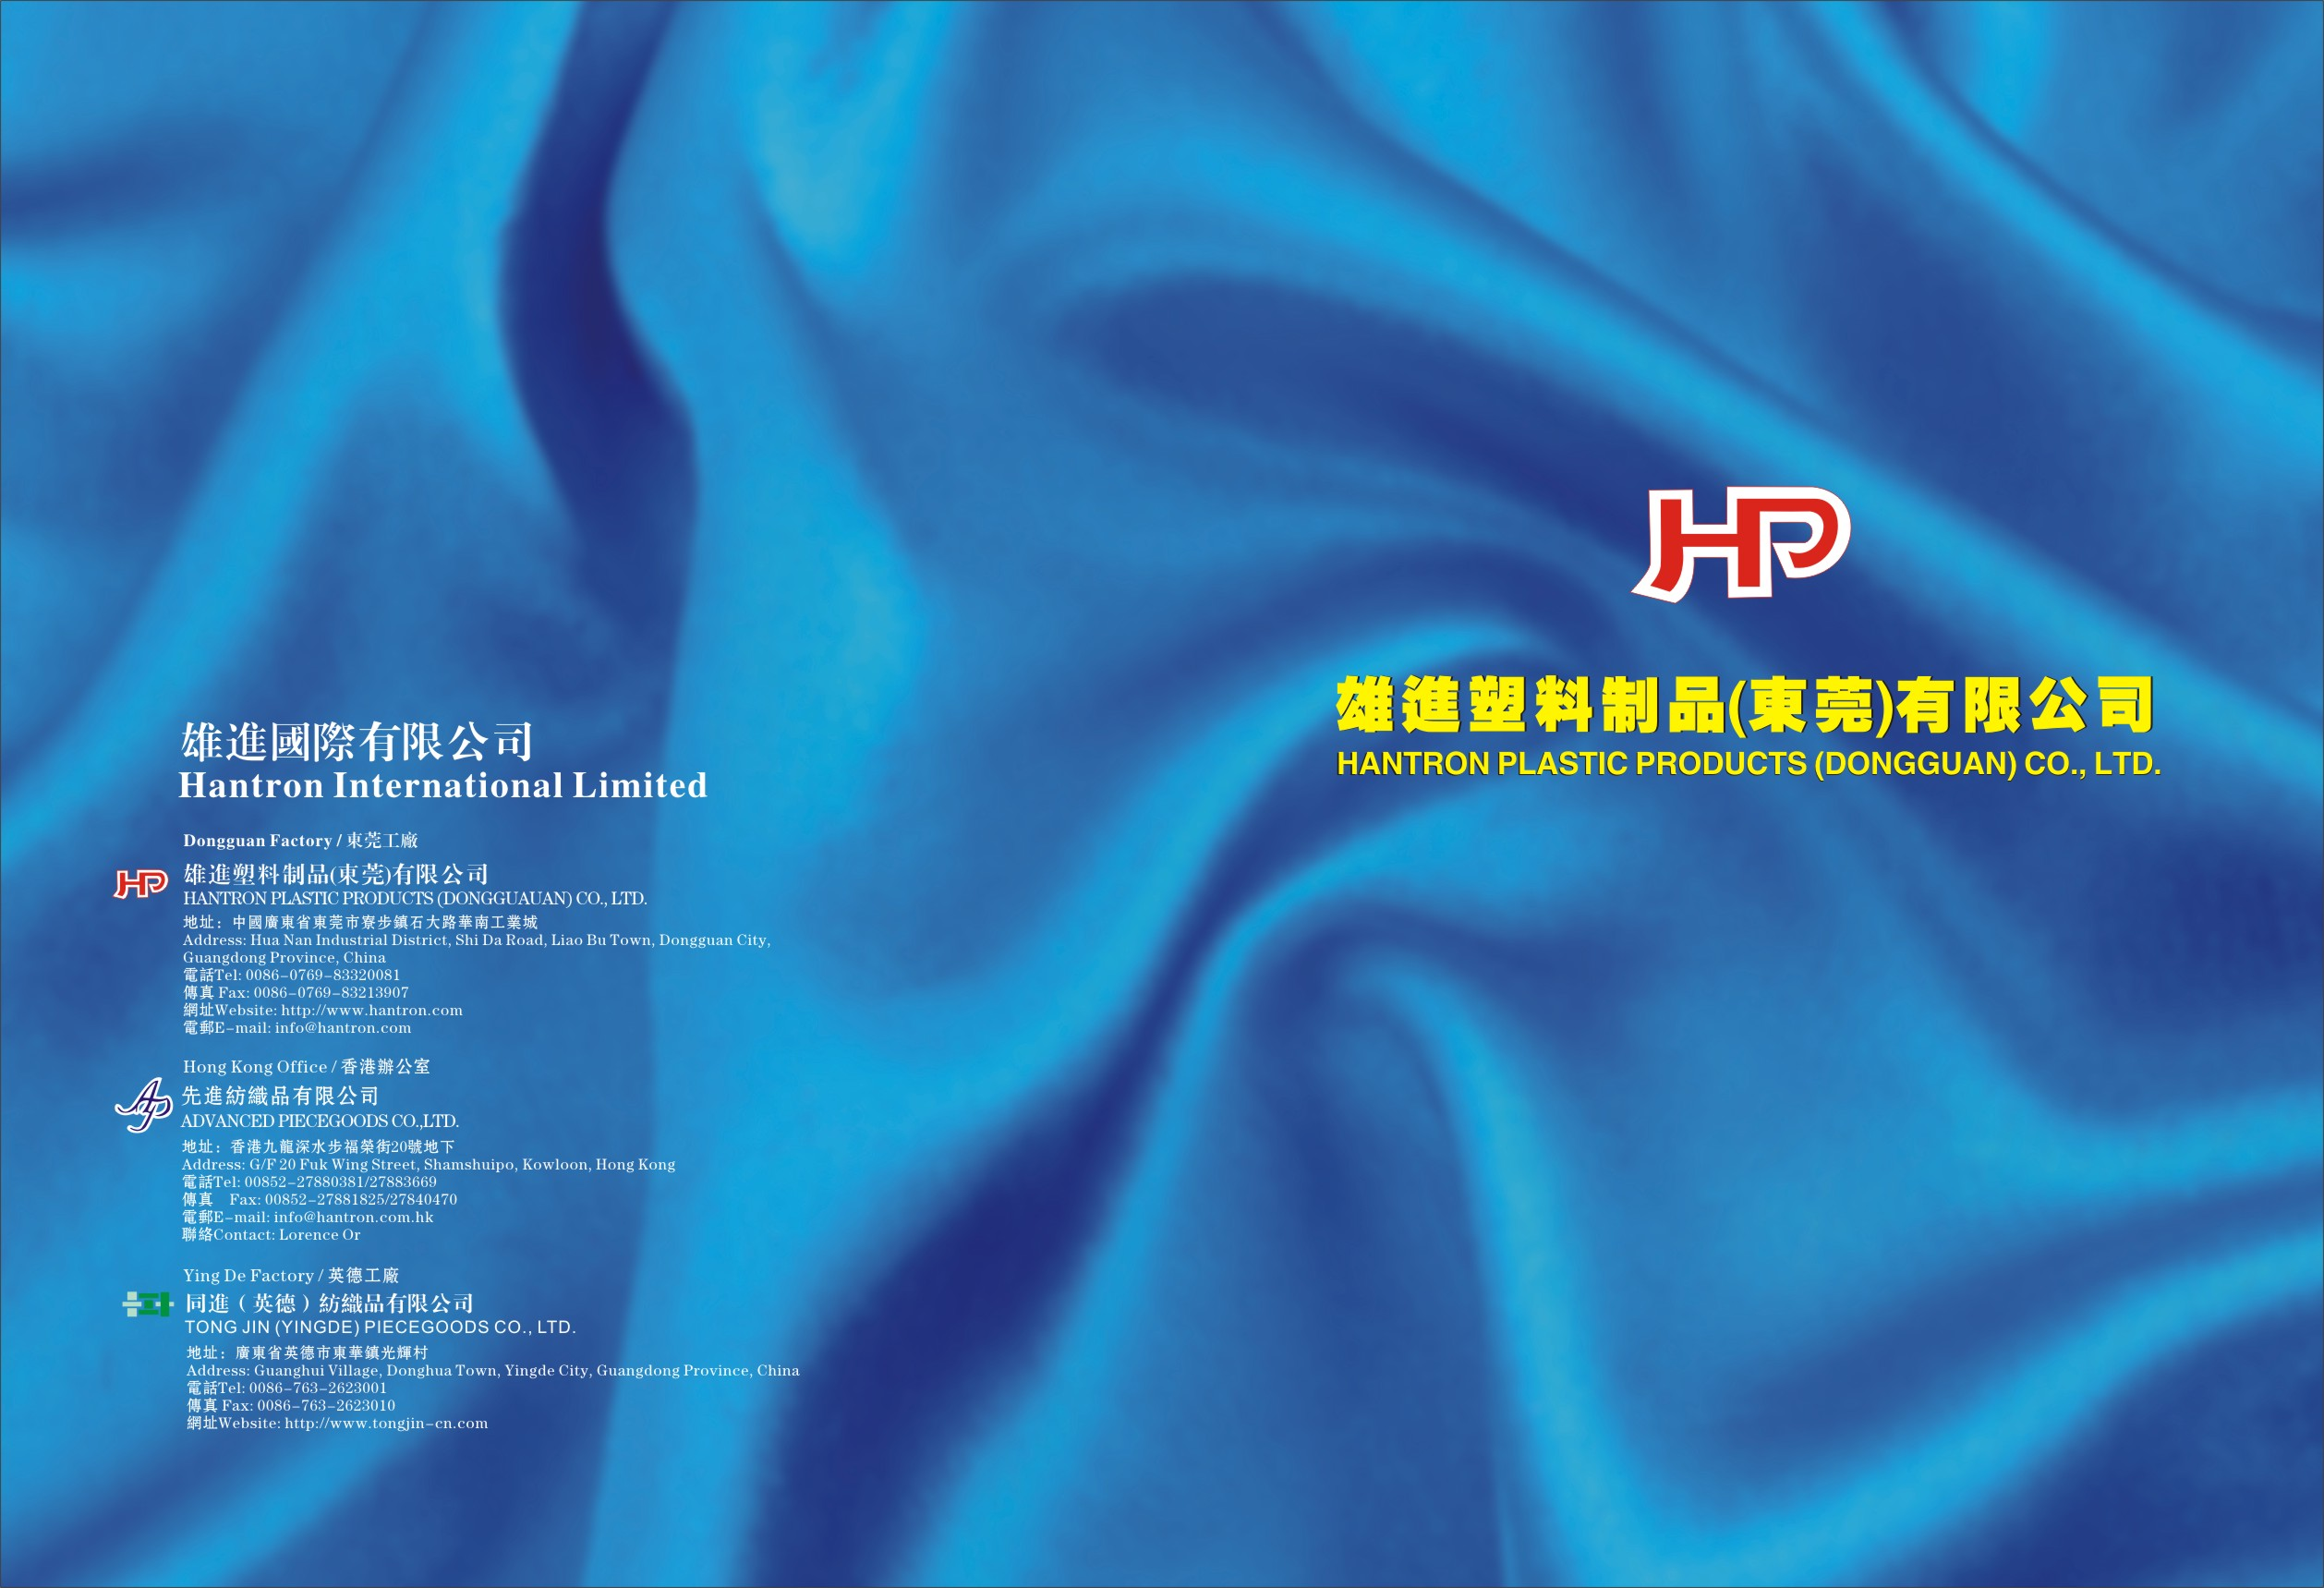 Hantron Plastic Products(Dongguan) Co.,Ltd